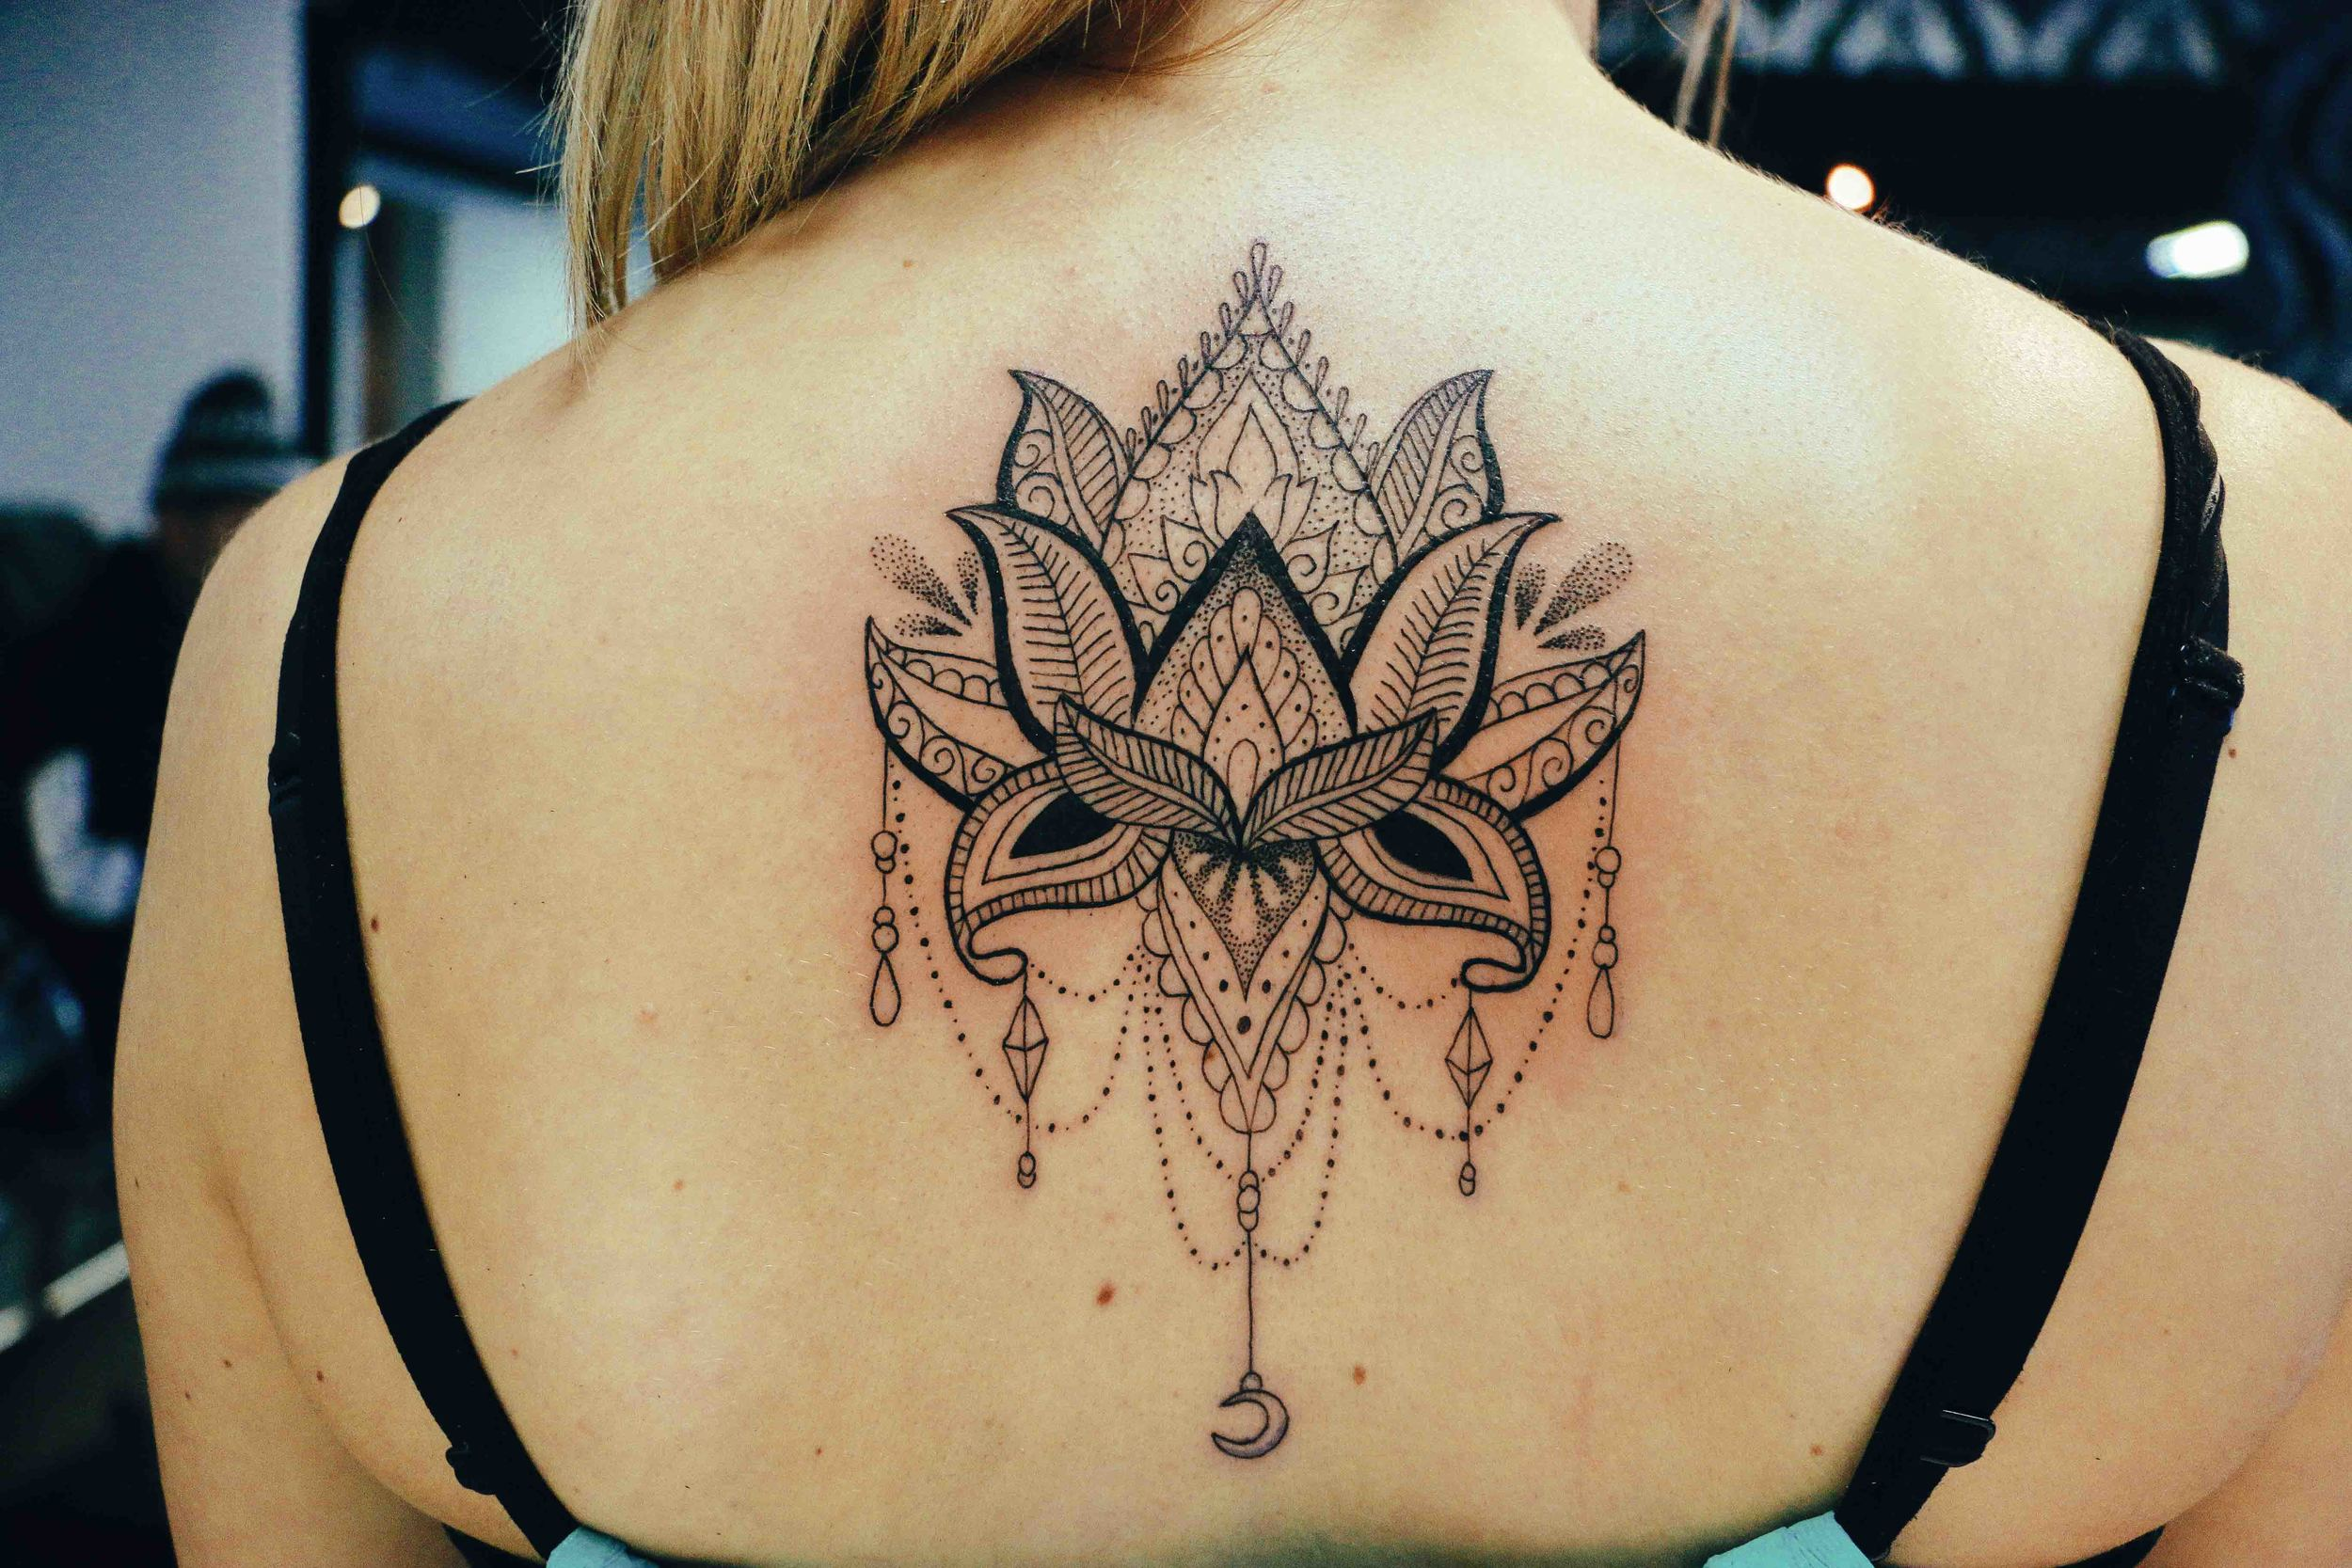 fyink-tattoos-aprshoplife-66.jpg